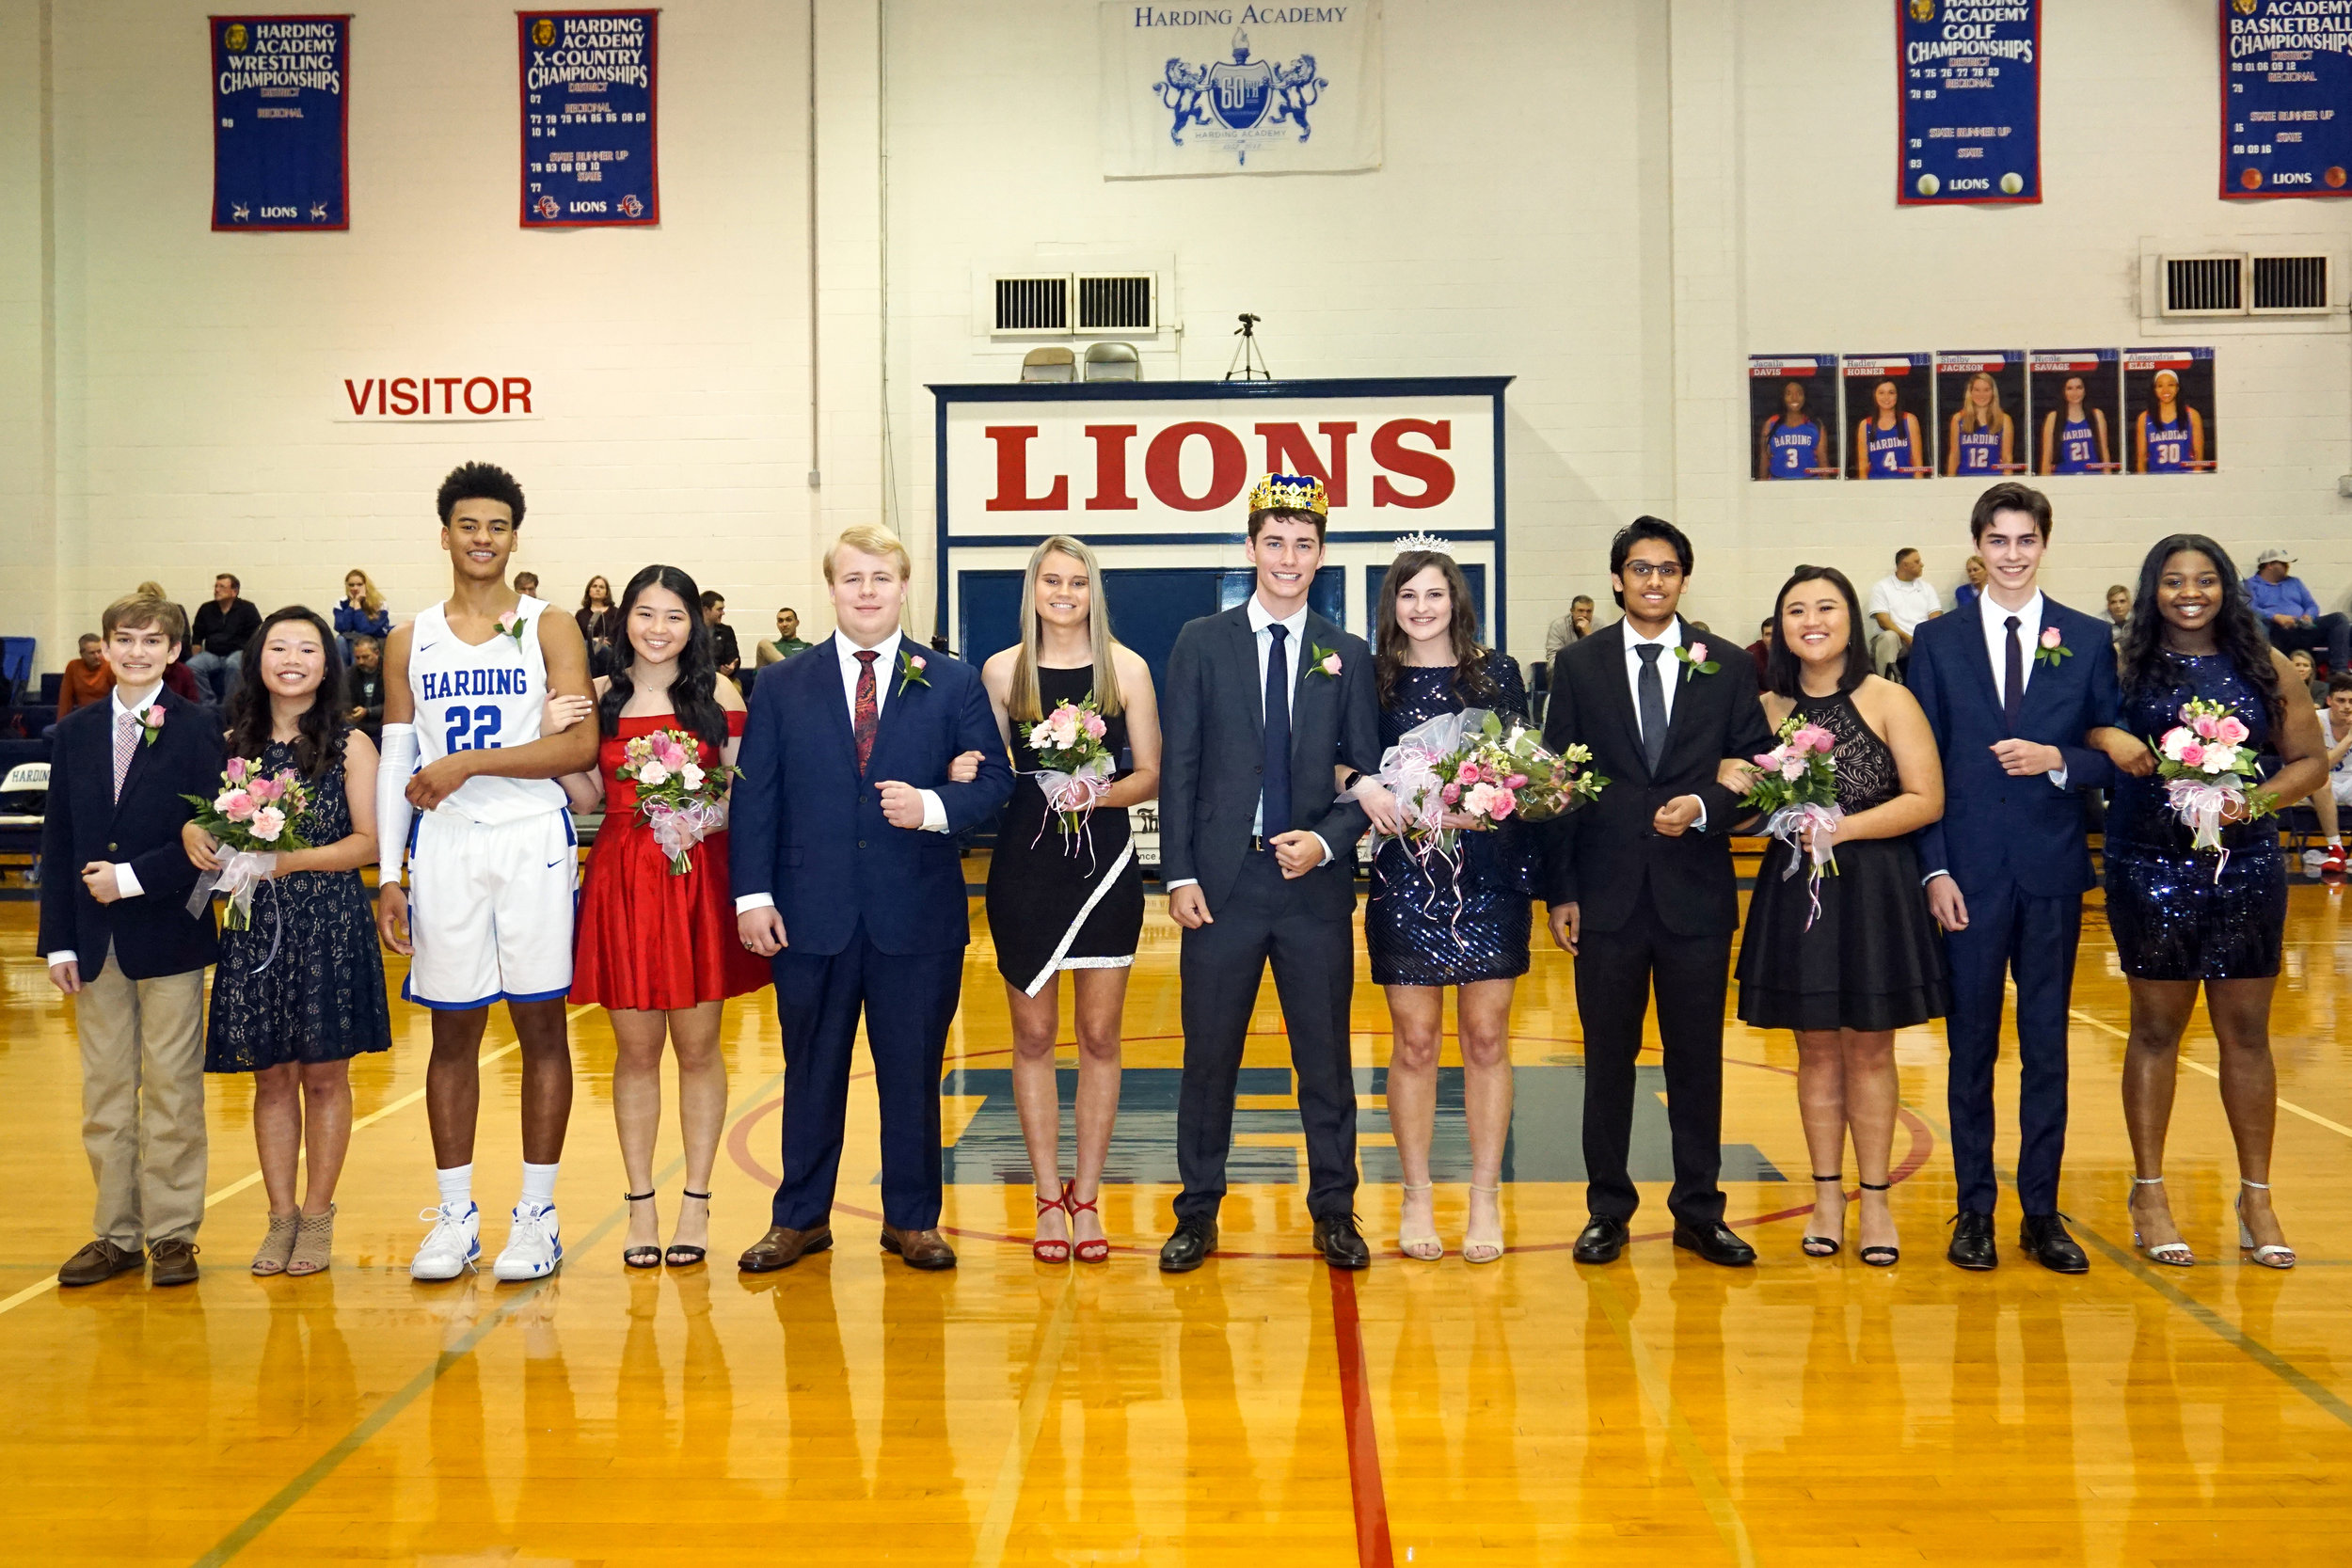 Bo Scott and Mallie Ottinger, Bobby Parks and Nicole Lock, Thomas Rovery and Jamie Ezell, Thad Lievens and Molli Arnett, Kyle D'Souza and Kelly Vinh, Levi Bennett and Monique Chew